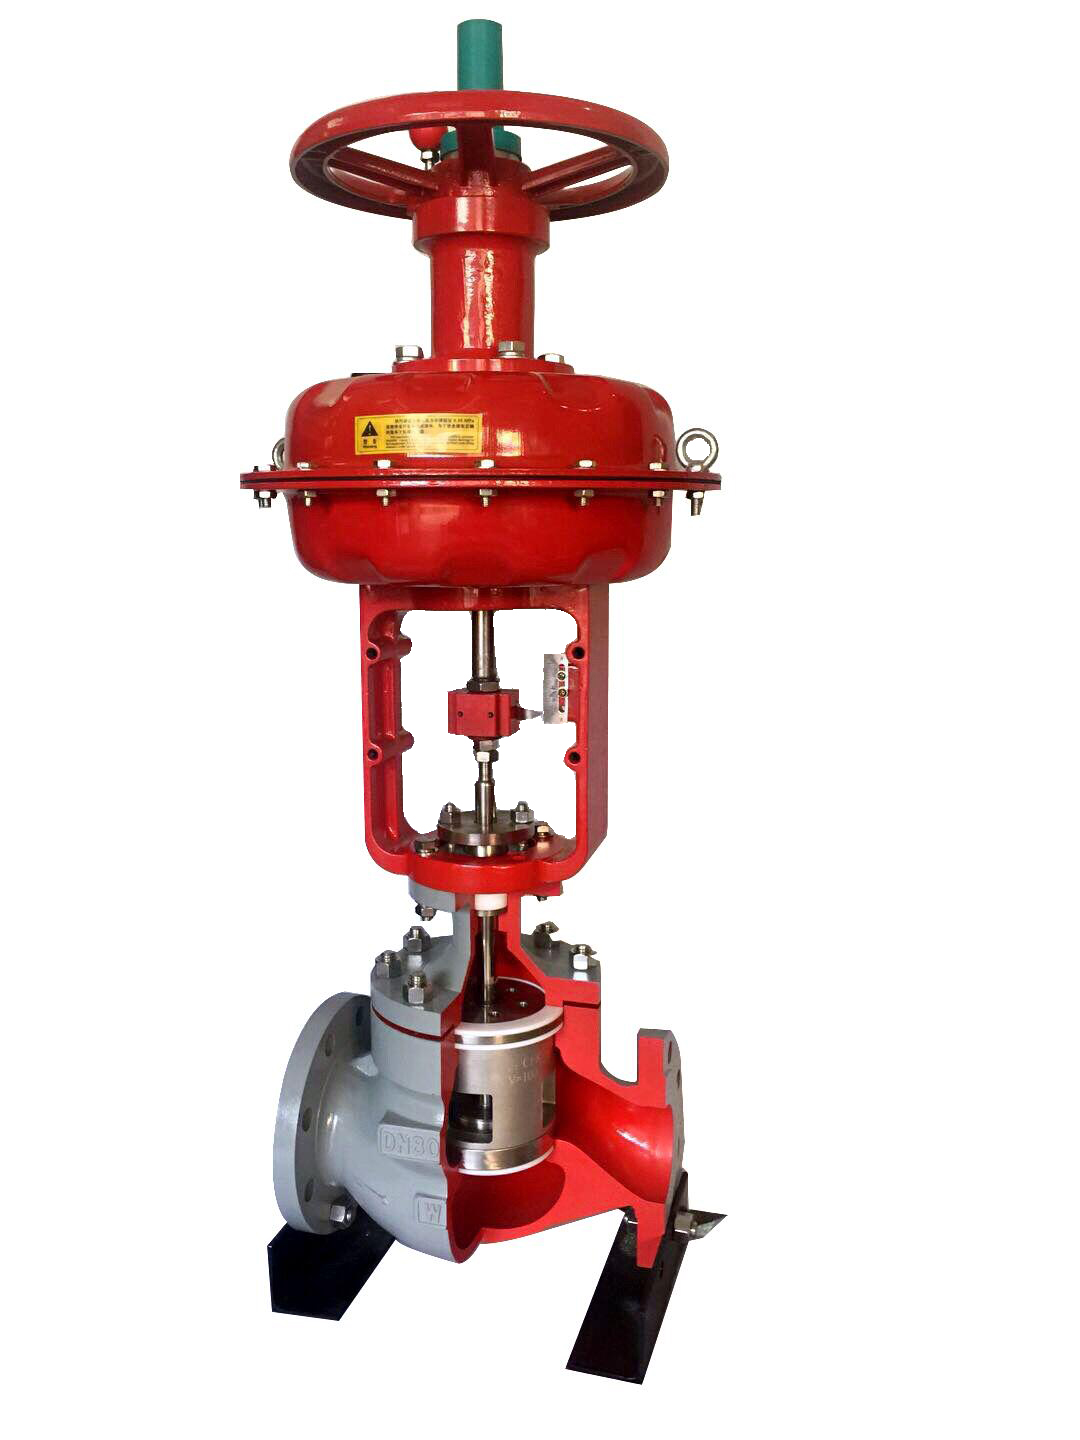 HLS Pneumatic Small-Port Single-Seated Control Valve